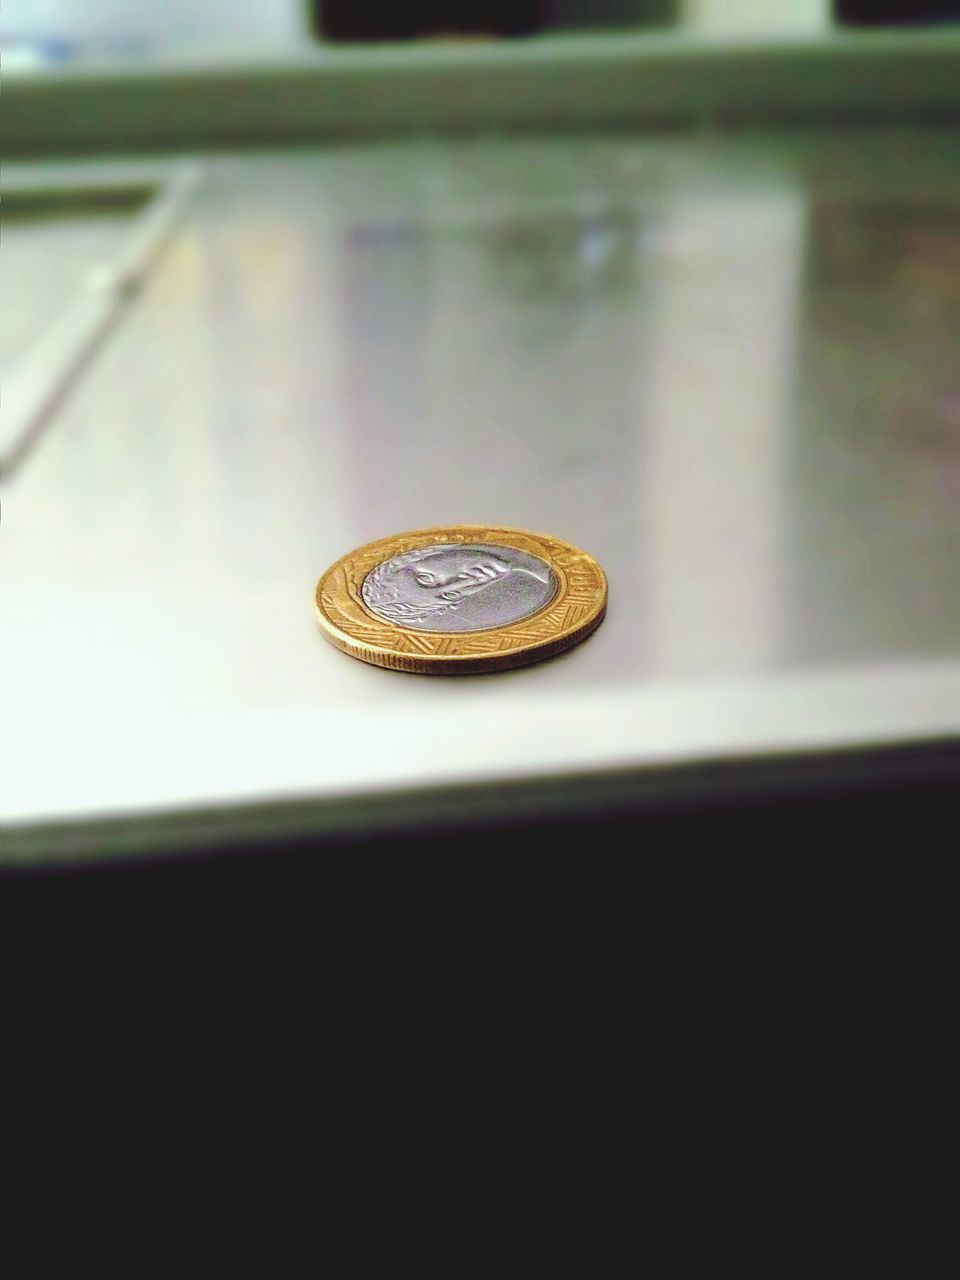 finance, no people, coin, close-up, currency, gold colored, wealth, indoors, day